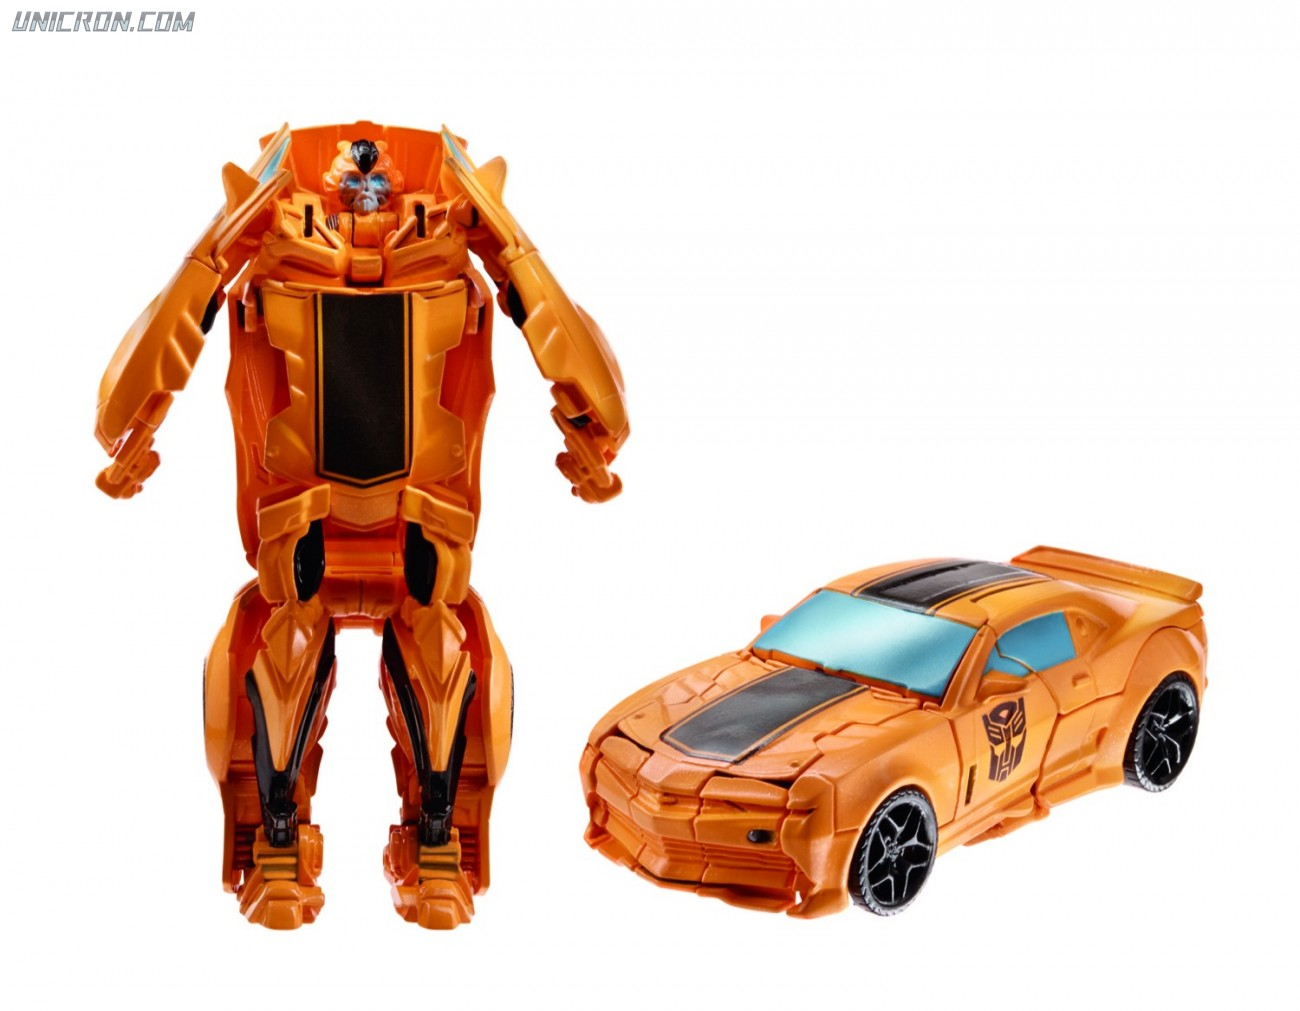 Transformers 4 Age of Extinction Bumblebee (One Step Changer) toy